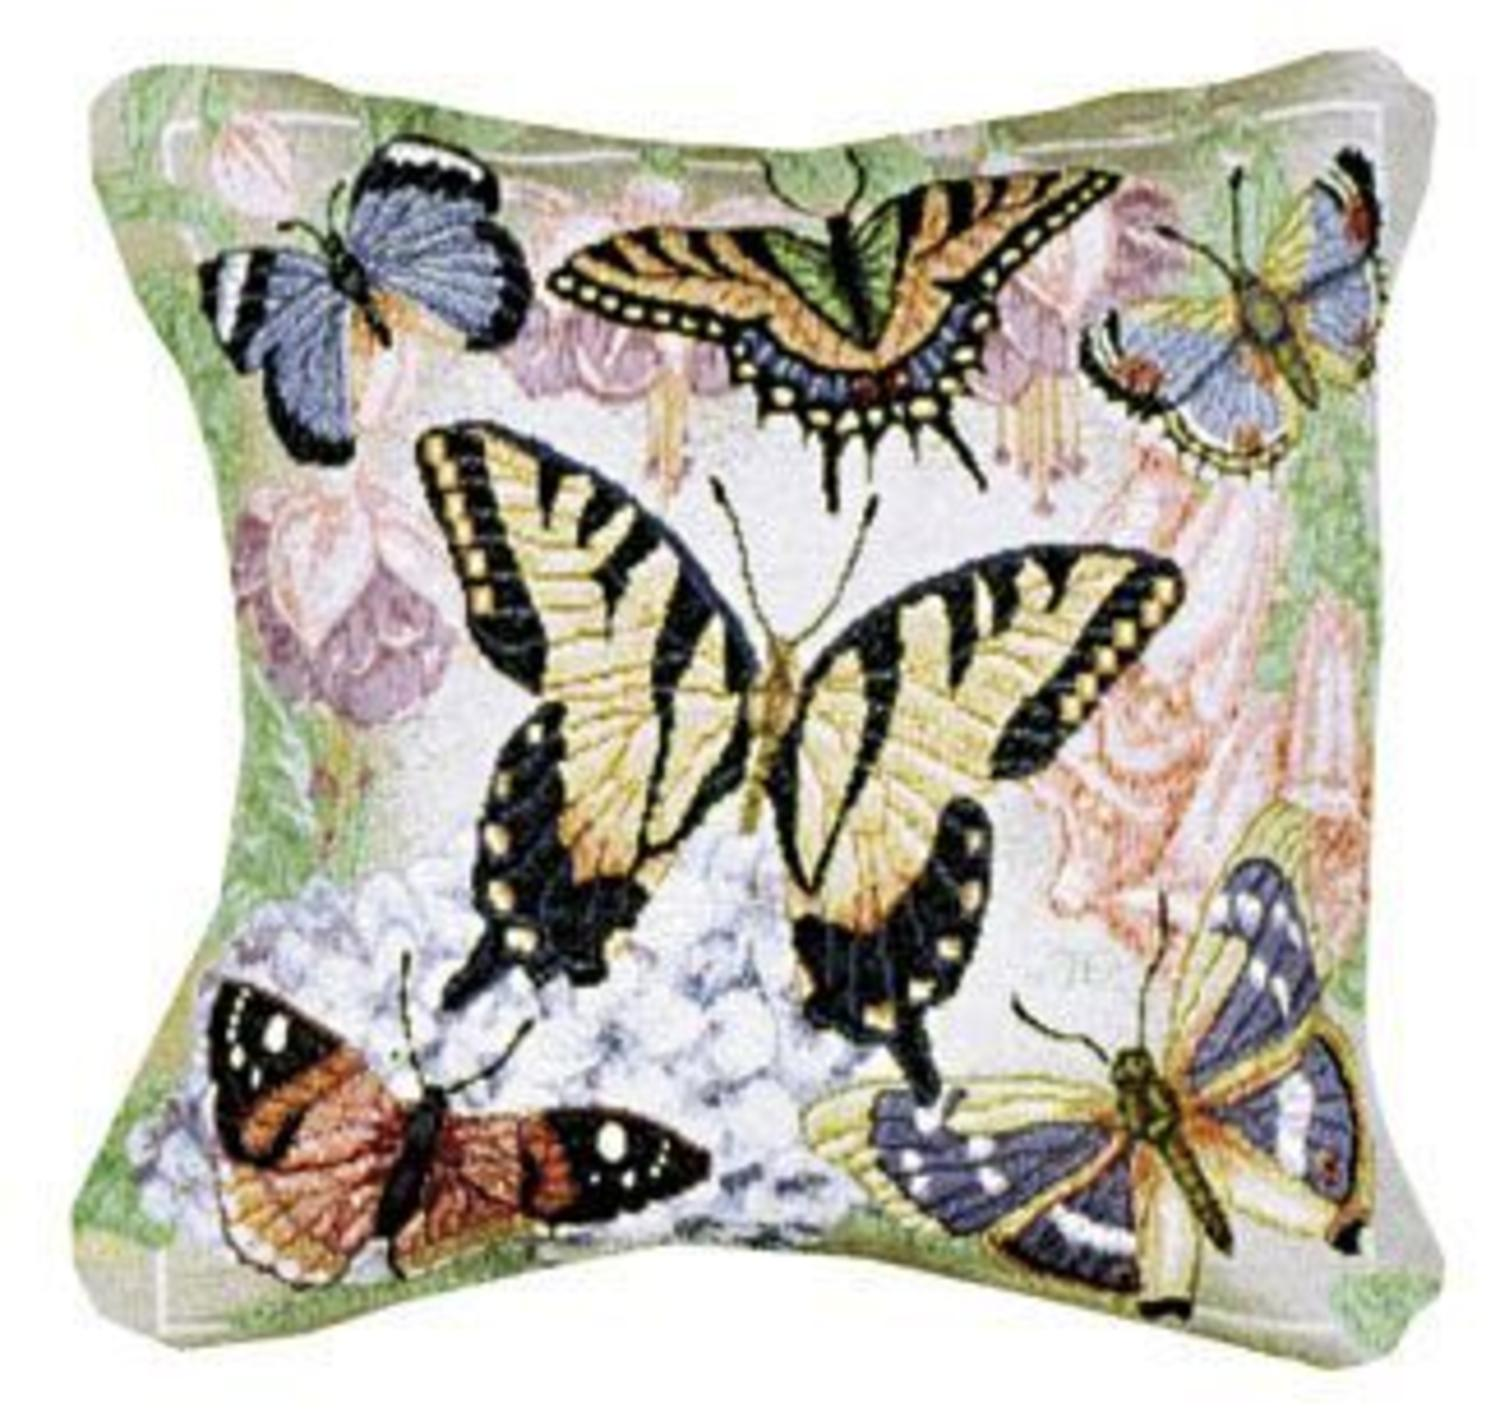 "Pack of 2 Decorative Butterfly Flowers Throw Pillows 12"" x 12"""